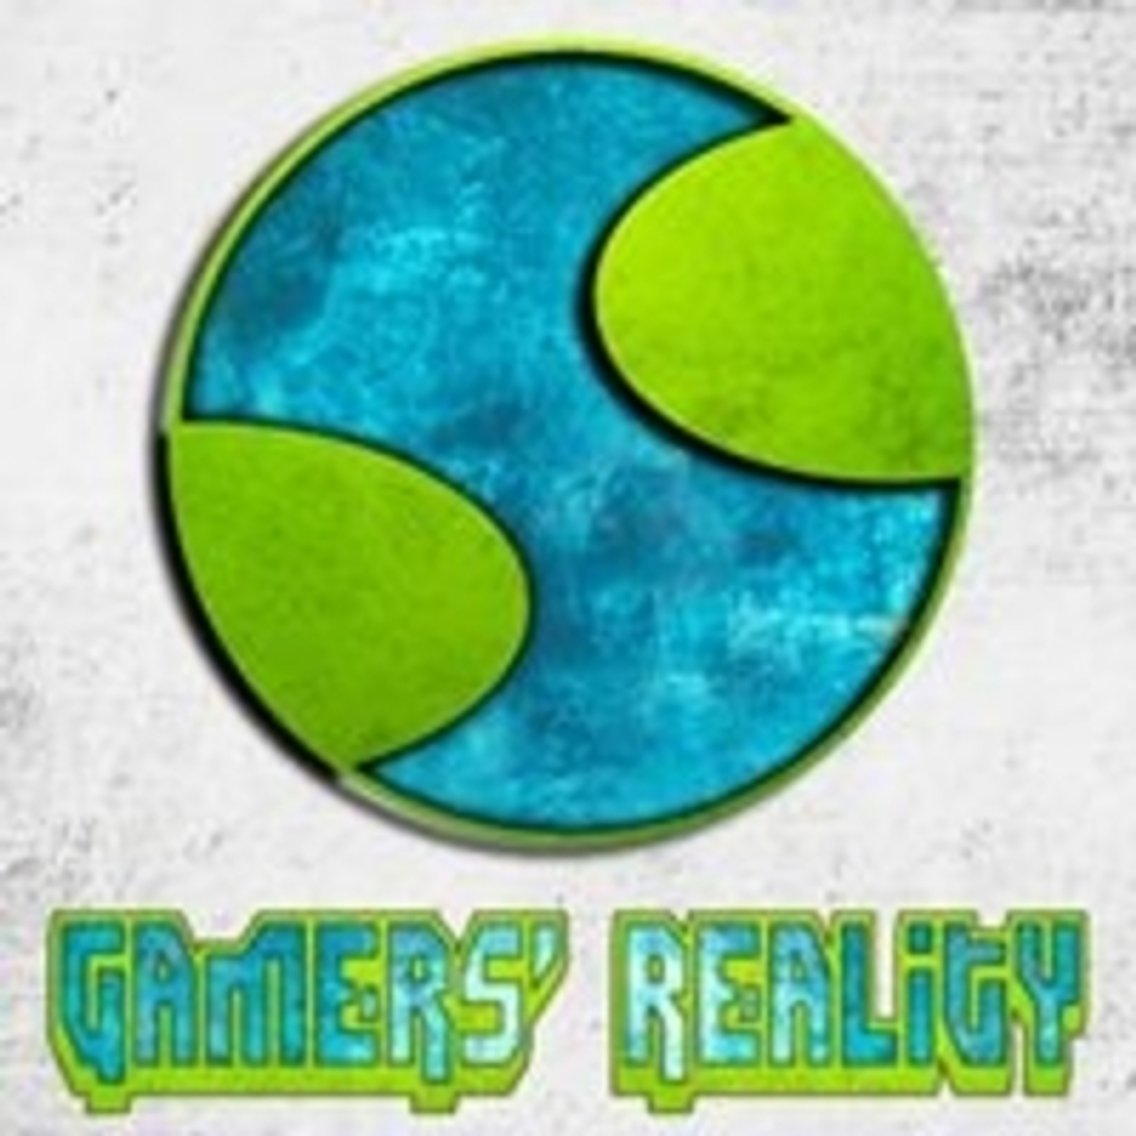 The Gamers' Reality Podcast - Cover Image